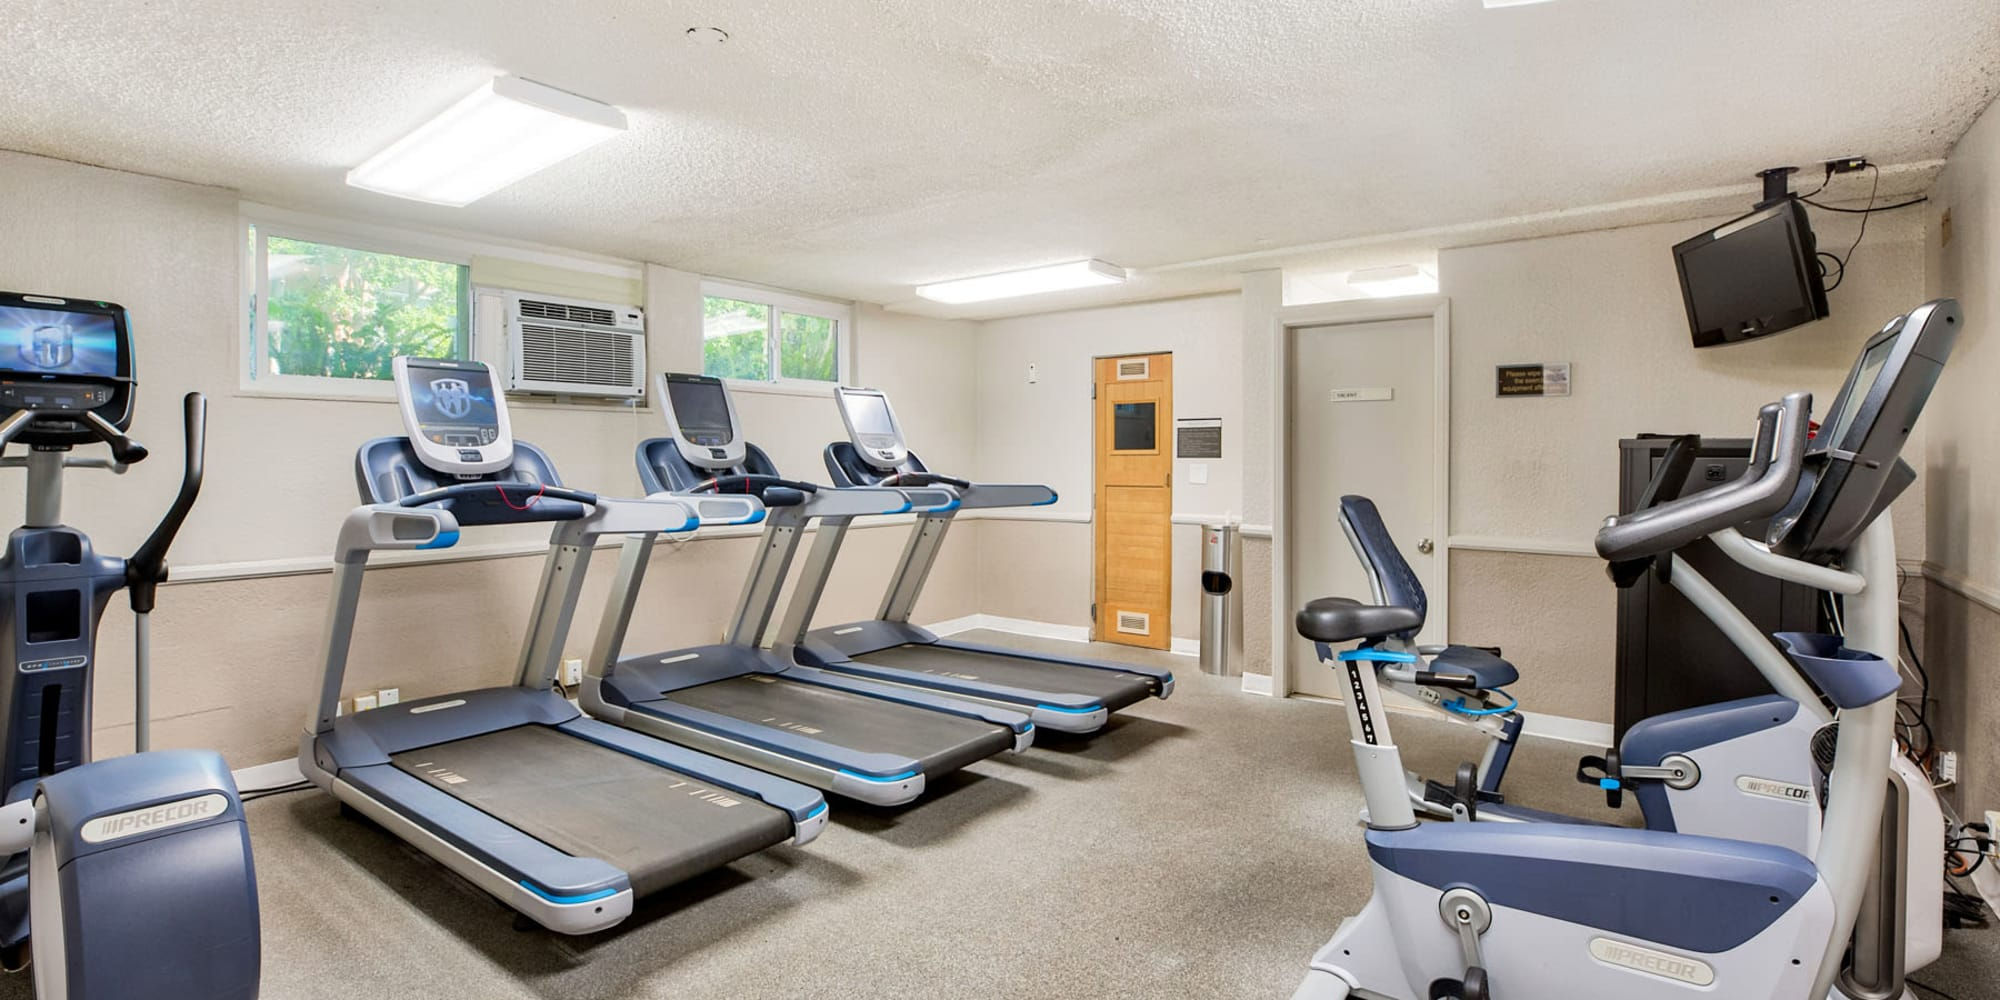 Cardio machines and exercise equipment in the fitness center at Casa Granada in Los Angeles, California